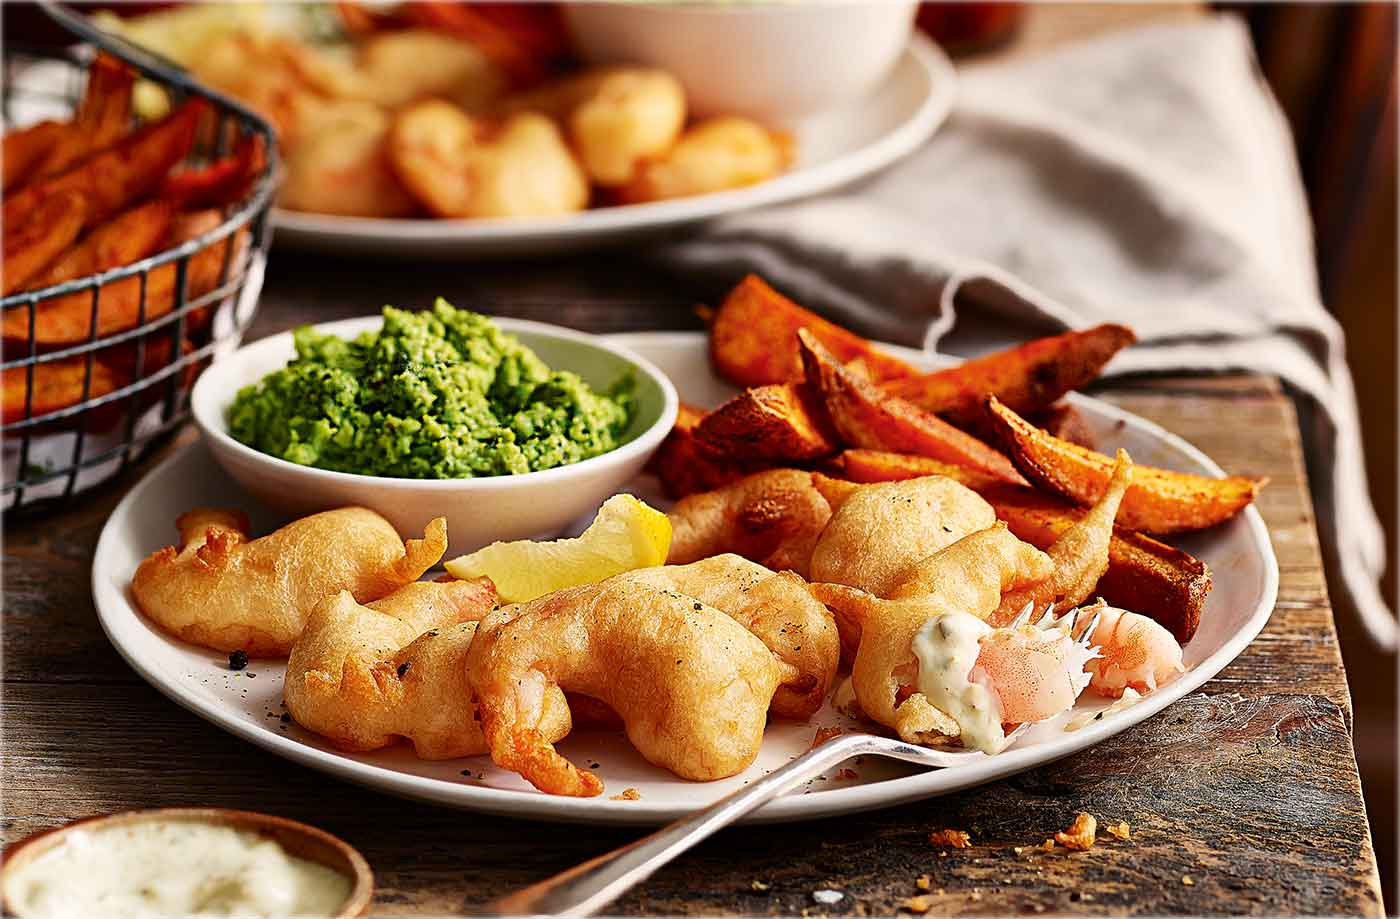 Beer Battered Scampi With Sweet Potato Chips And Mushy Peas